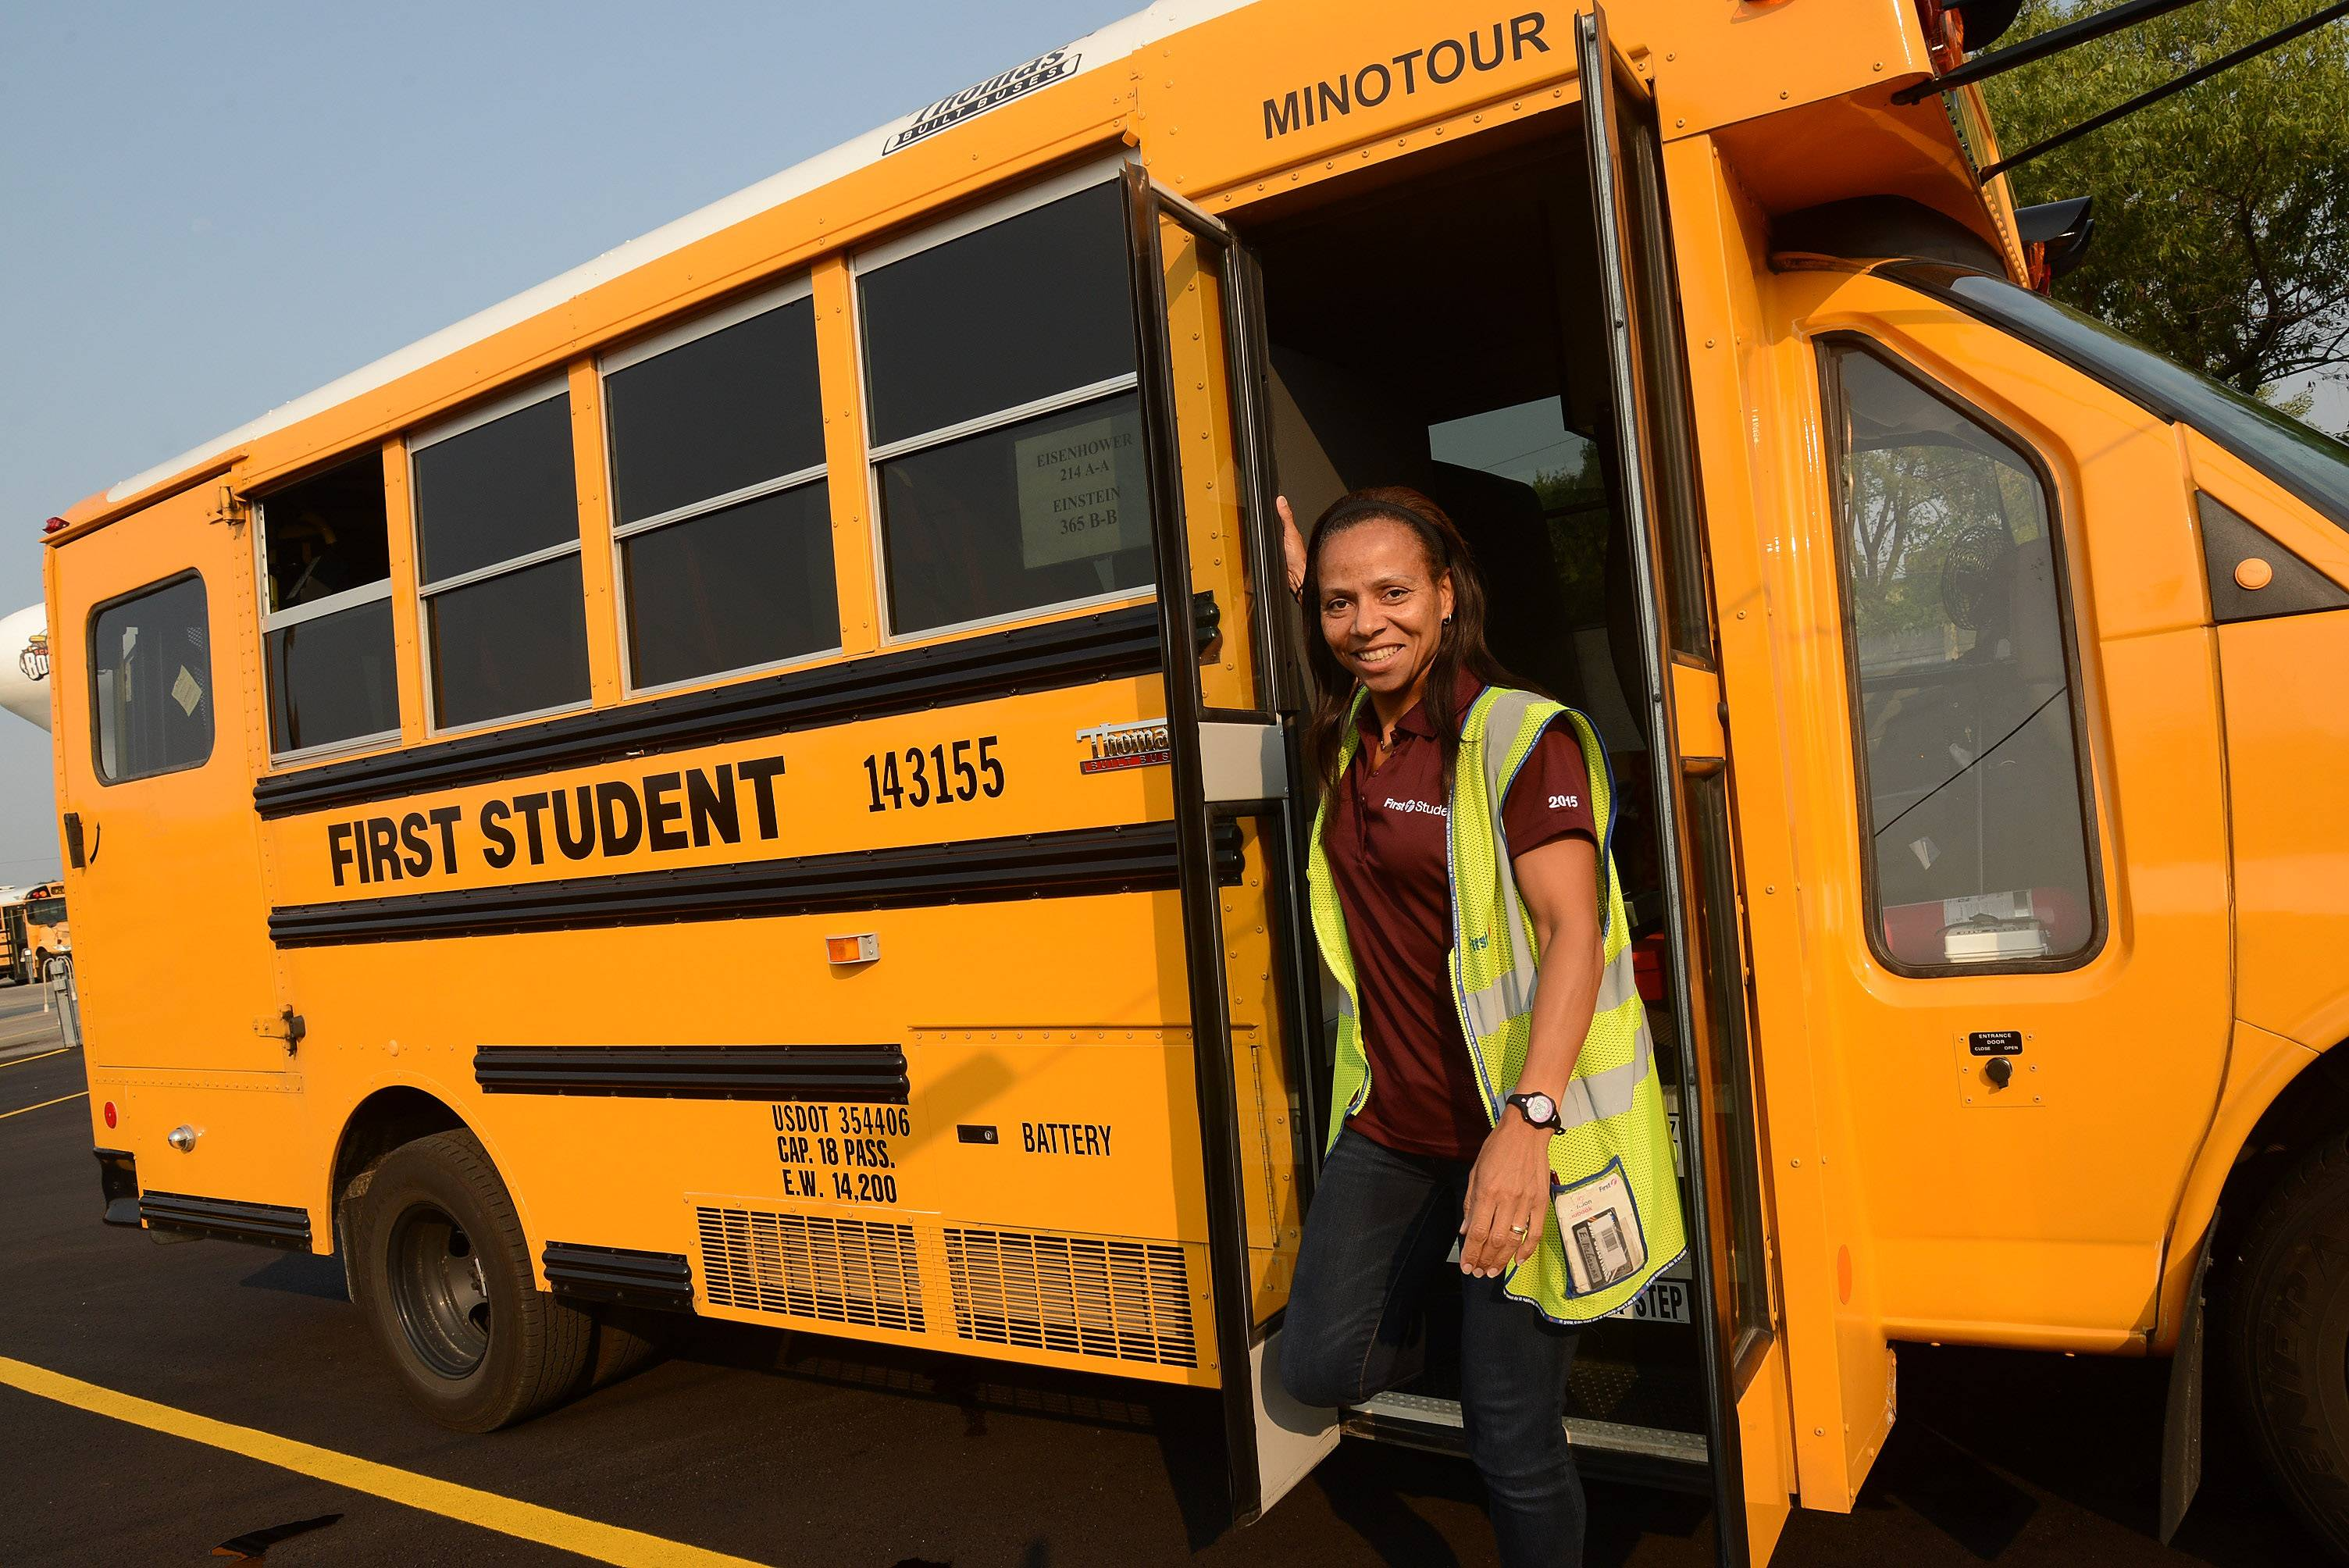 When not in training, Emma McGowan works as a school bus driver for Schaumburg Township Elementary District 54.